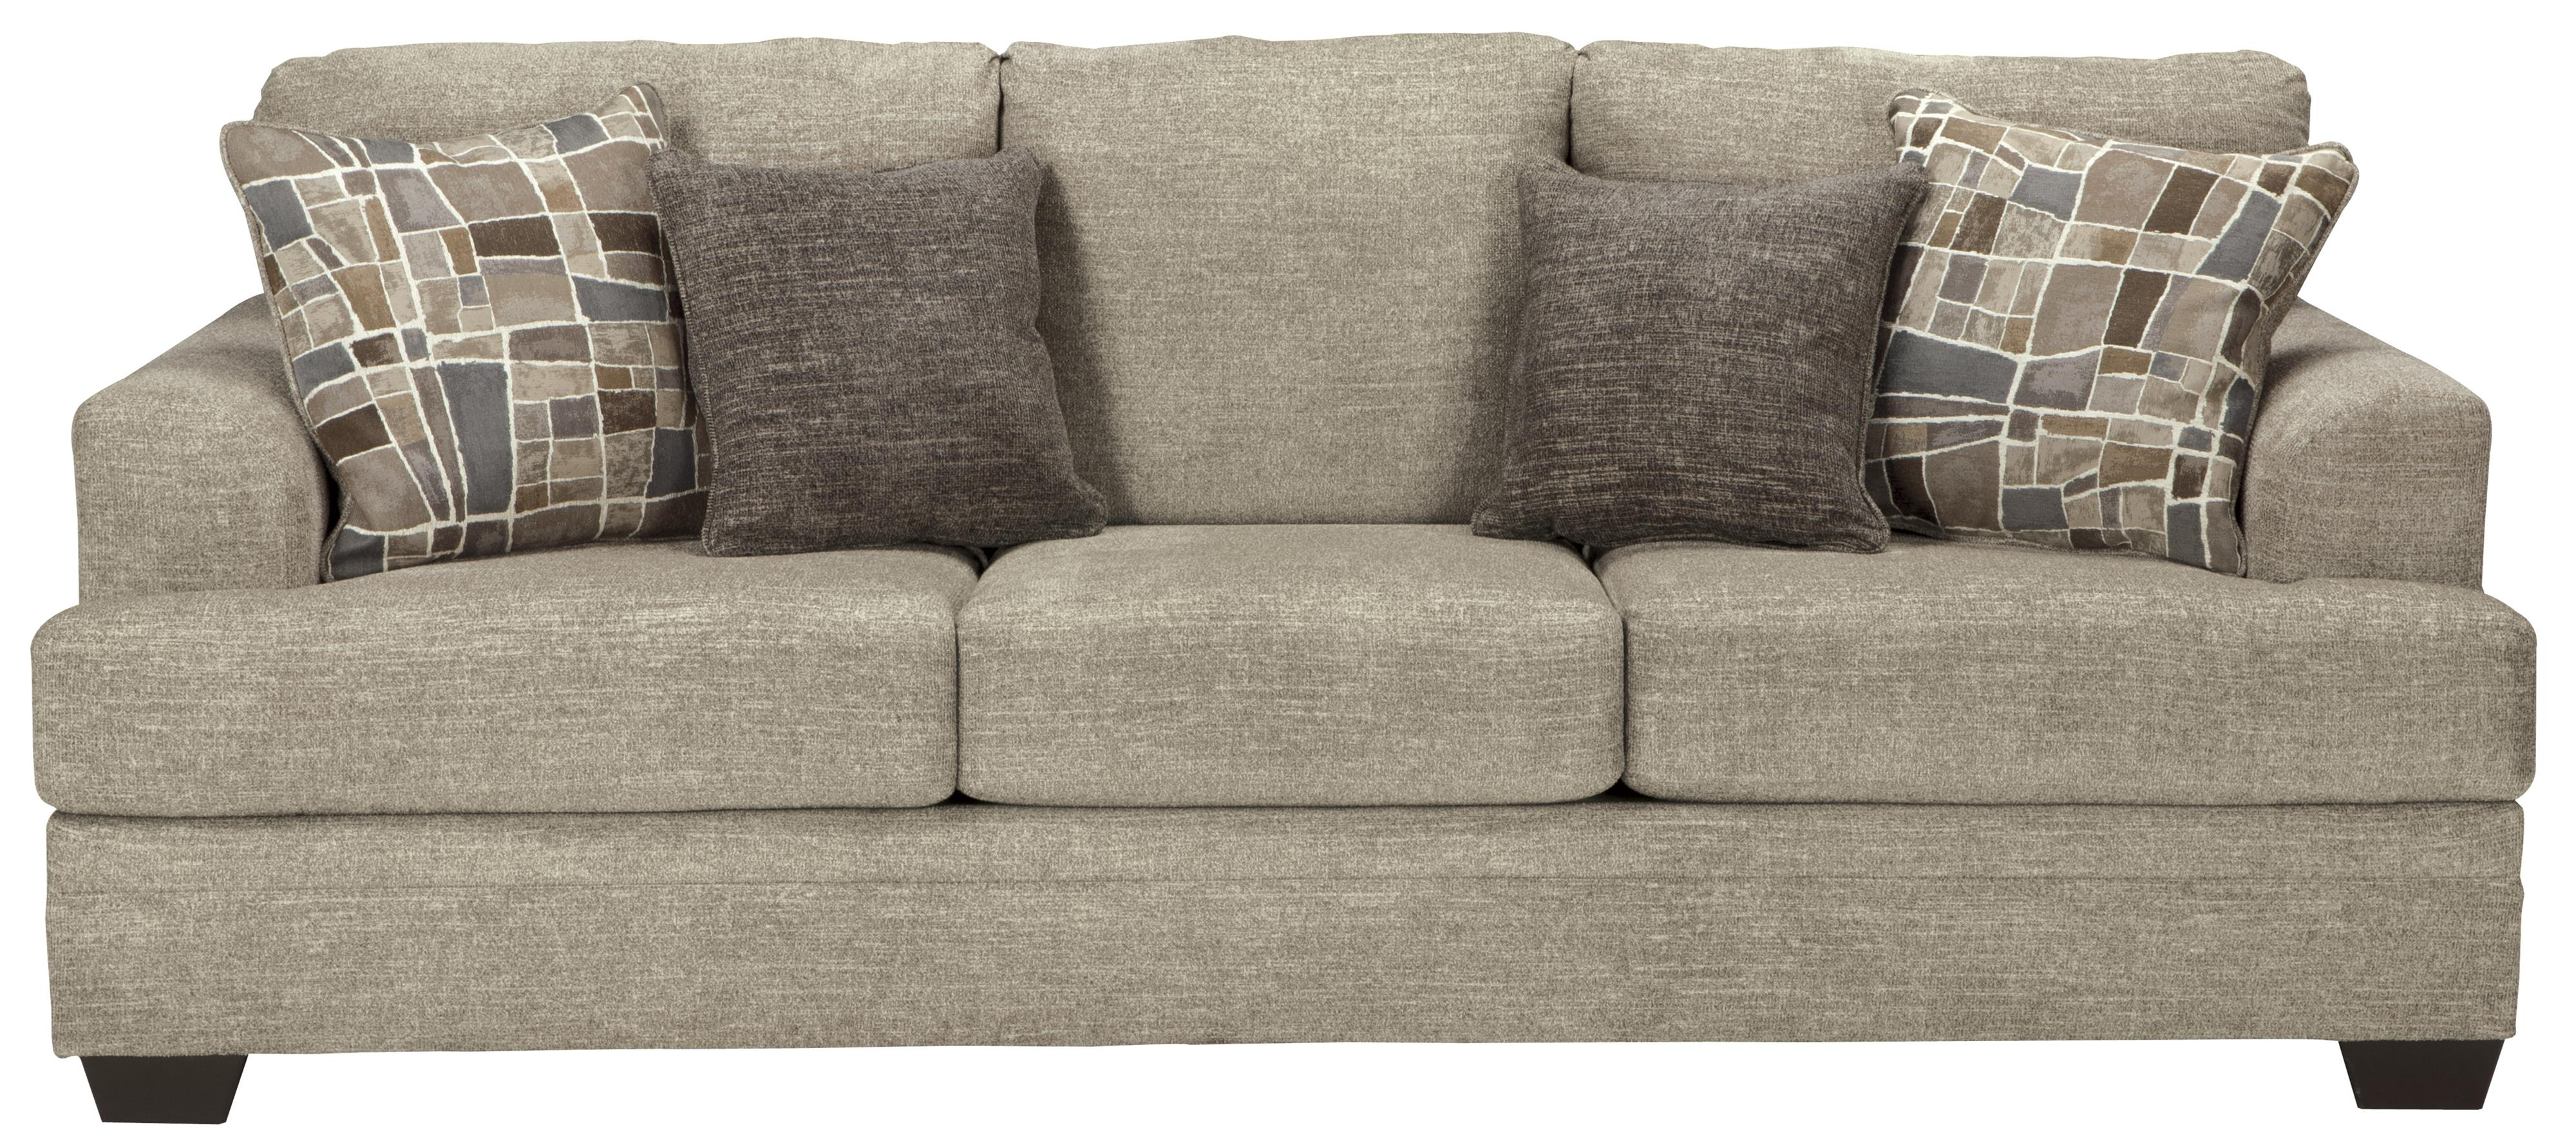 Benchcraft By Ashley Barrish 4850138 Contemporary Sofa With Flared